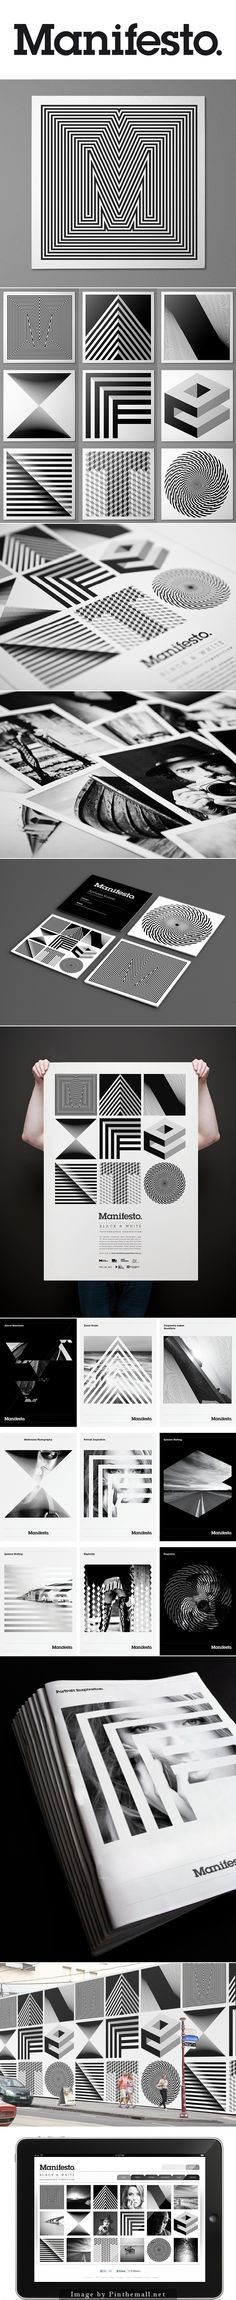 Manifesto Identity By Josip Kelava. Manifesto is a black and white photographic competition for university students studying Photography in Melbourne.